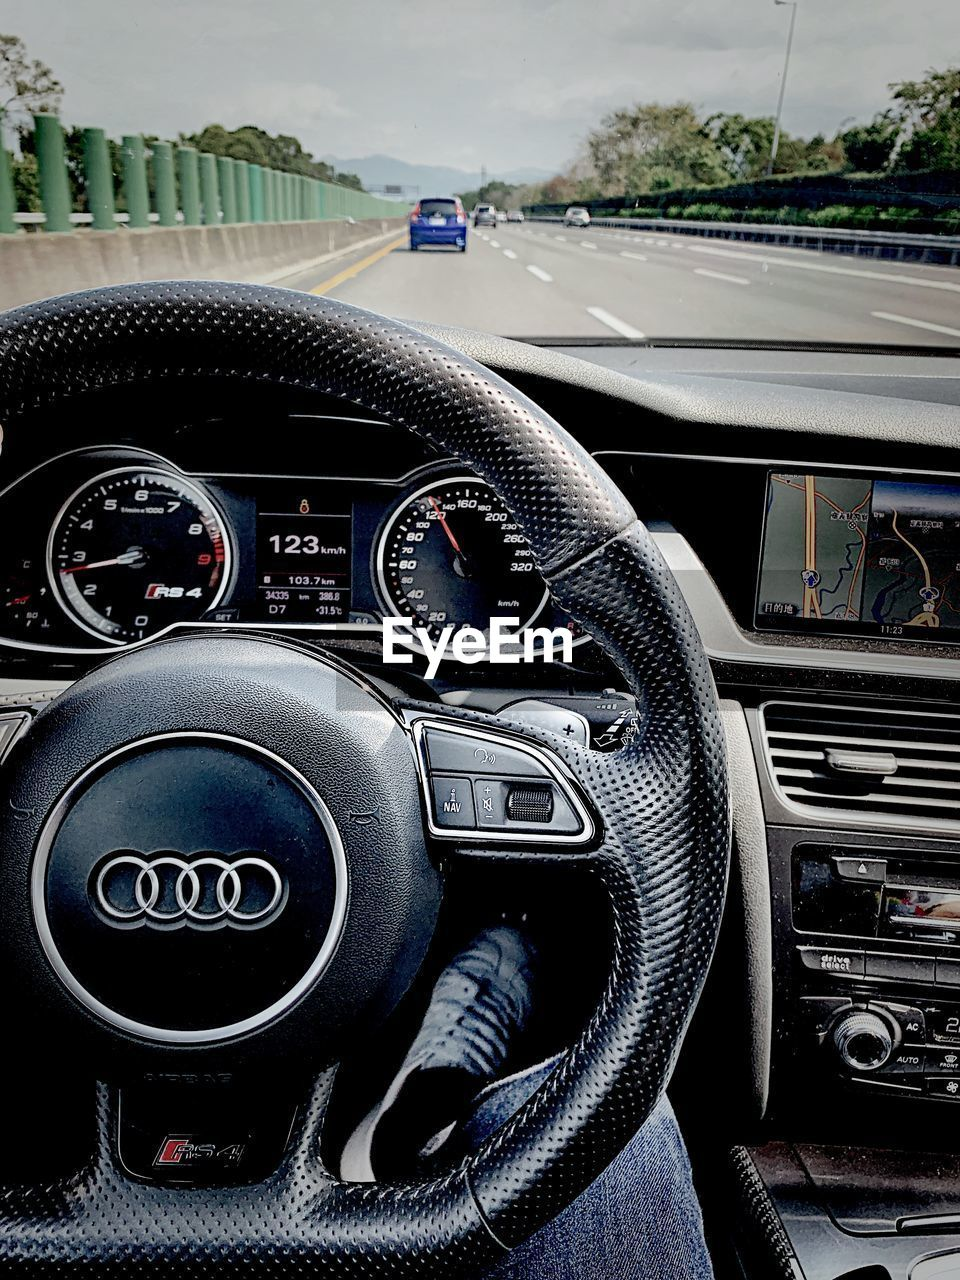 transportation, mode of transportation, car, vehicle interior, motor vehicle, land vehicle, car interior, control panel, control, steering wheel, dashboard, number, day, close-up, travel, gearshift, speedometer, black color, one person, outdoors